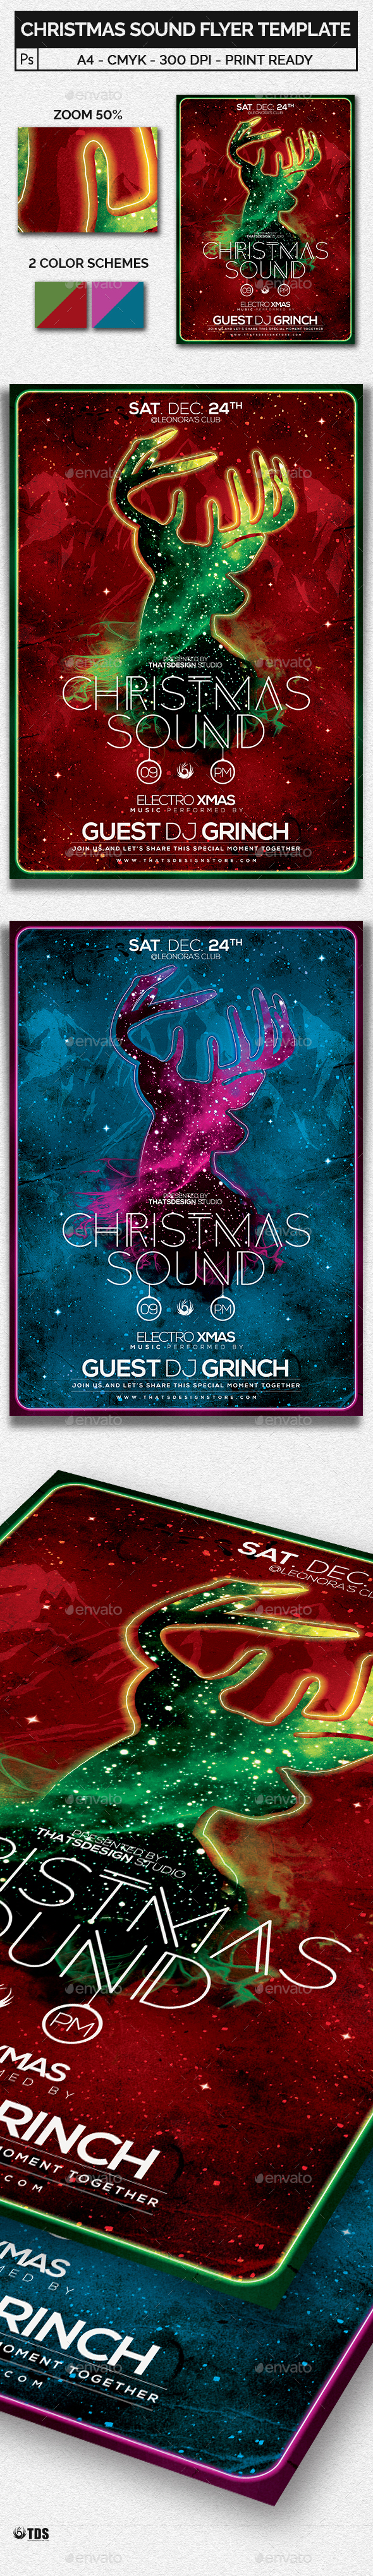 Christmas Sound Flyer Template - Holidays Events